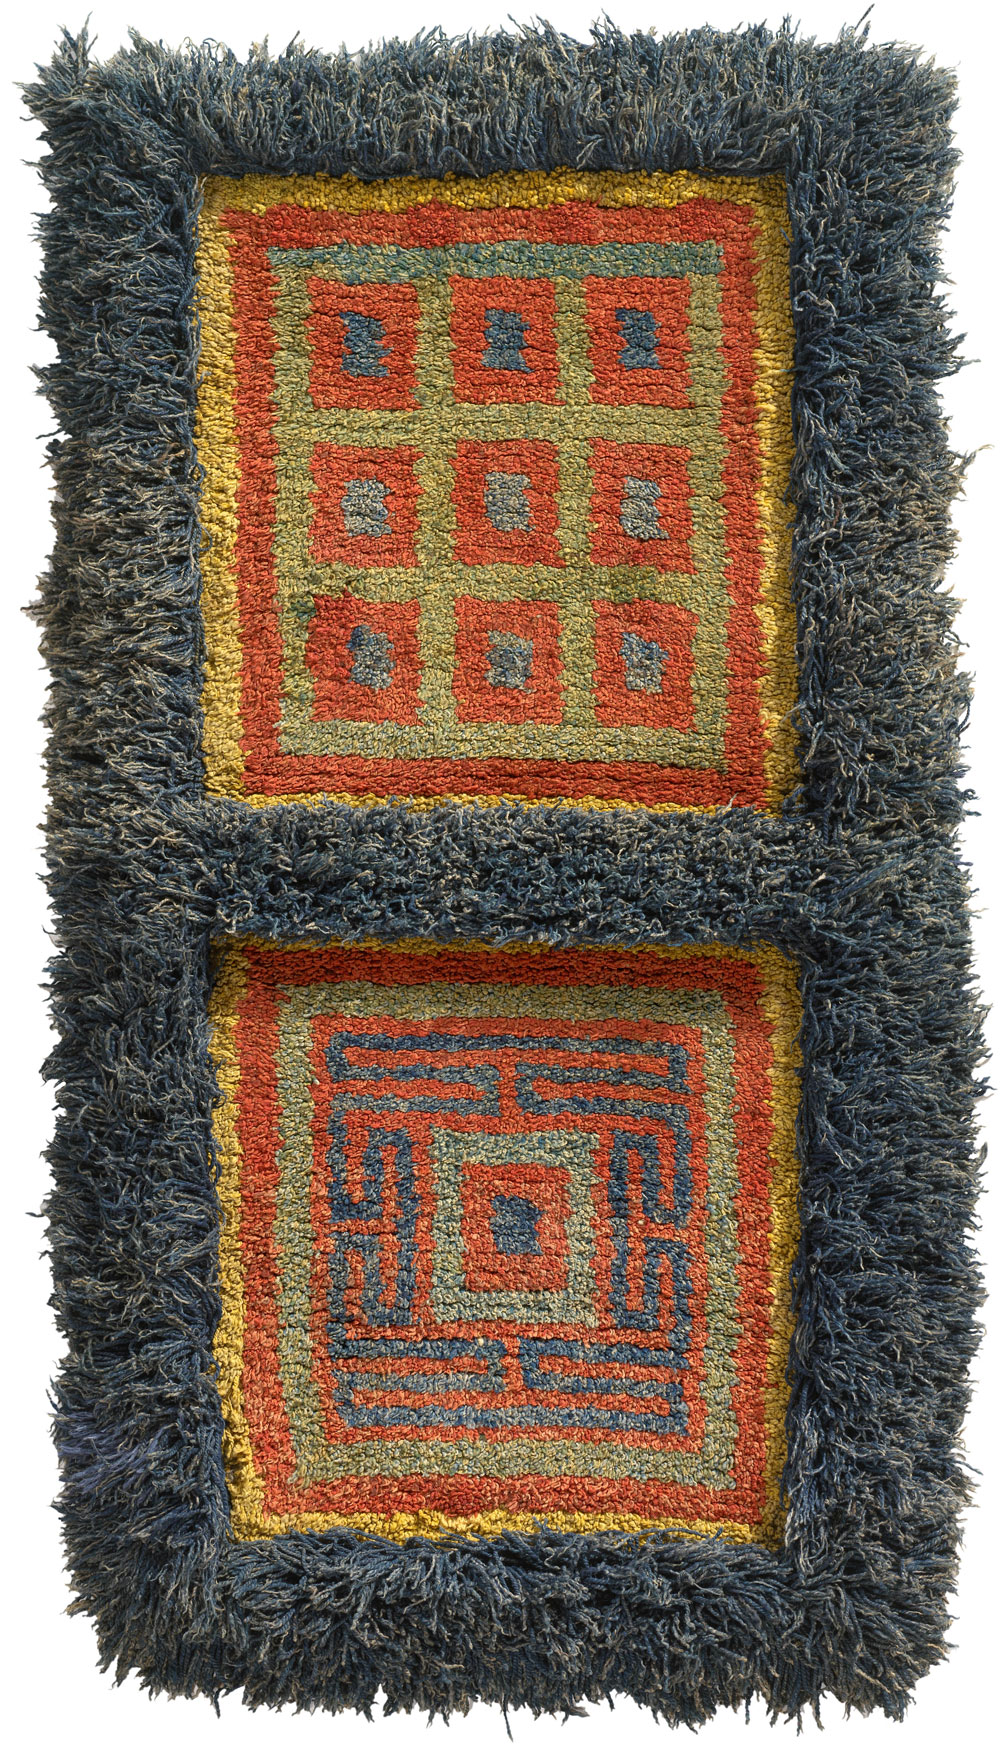 Tibetan rugs at Cologne Fine Art 2014, Wangden warp face back rug, 19th century, 156 x 74 cm